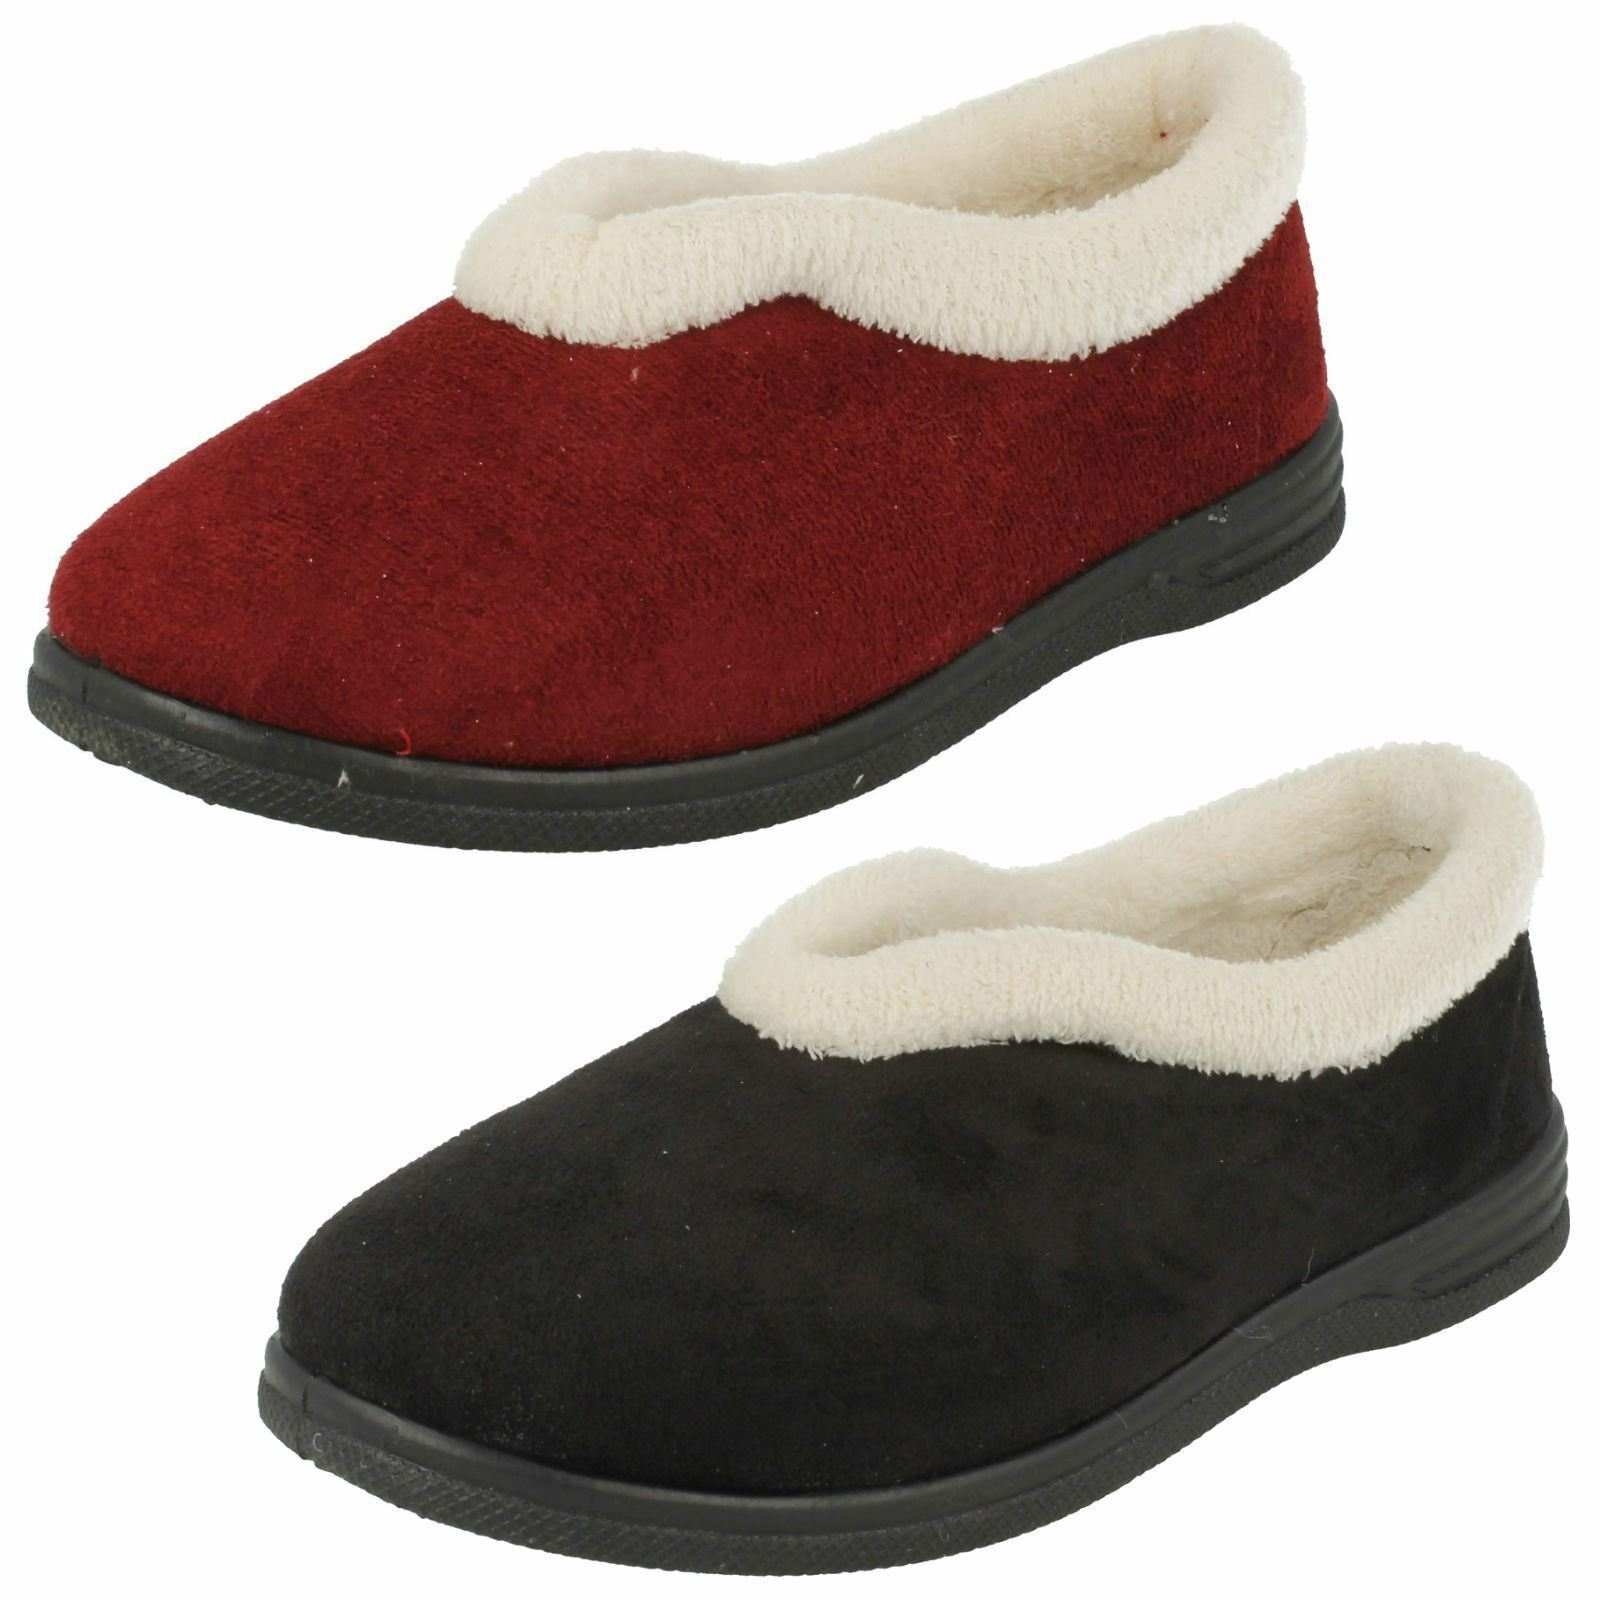 sale by Ladies Ingrid textile slippers by sale Sandpiper Retail 5153e8